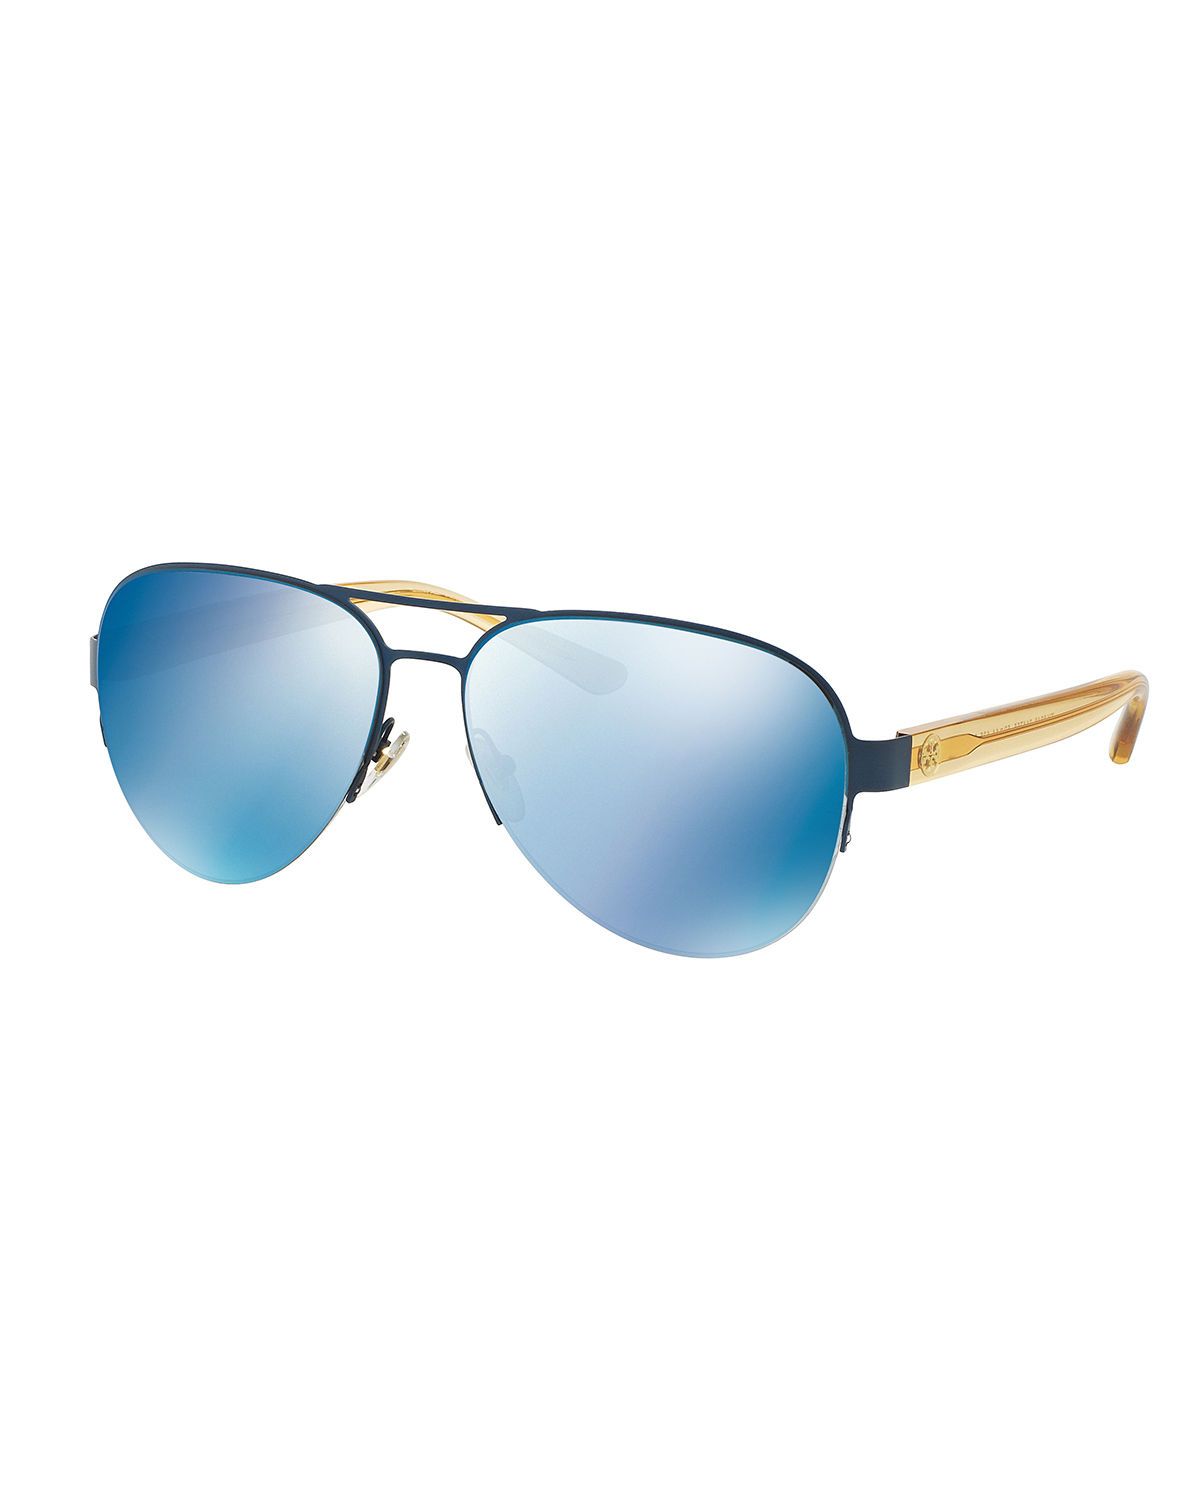 Mirrored Iridescent Aviator Sunglasses